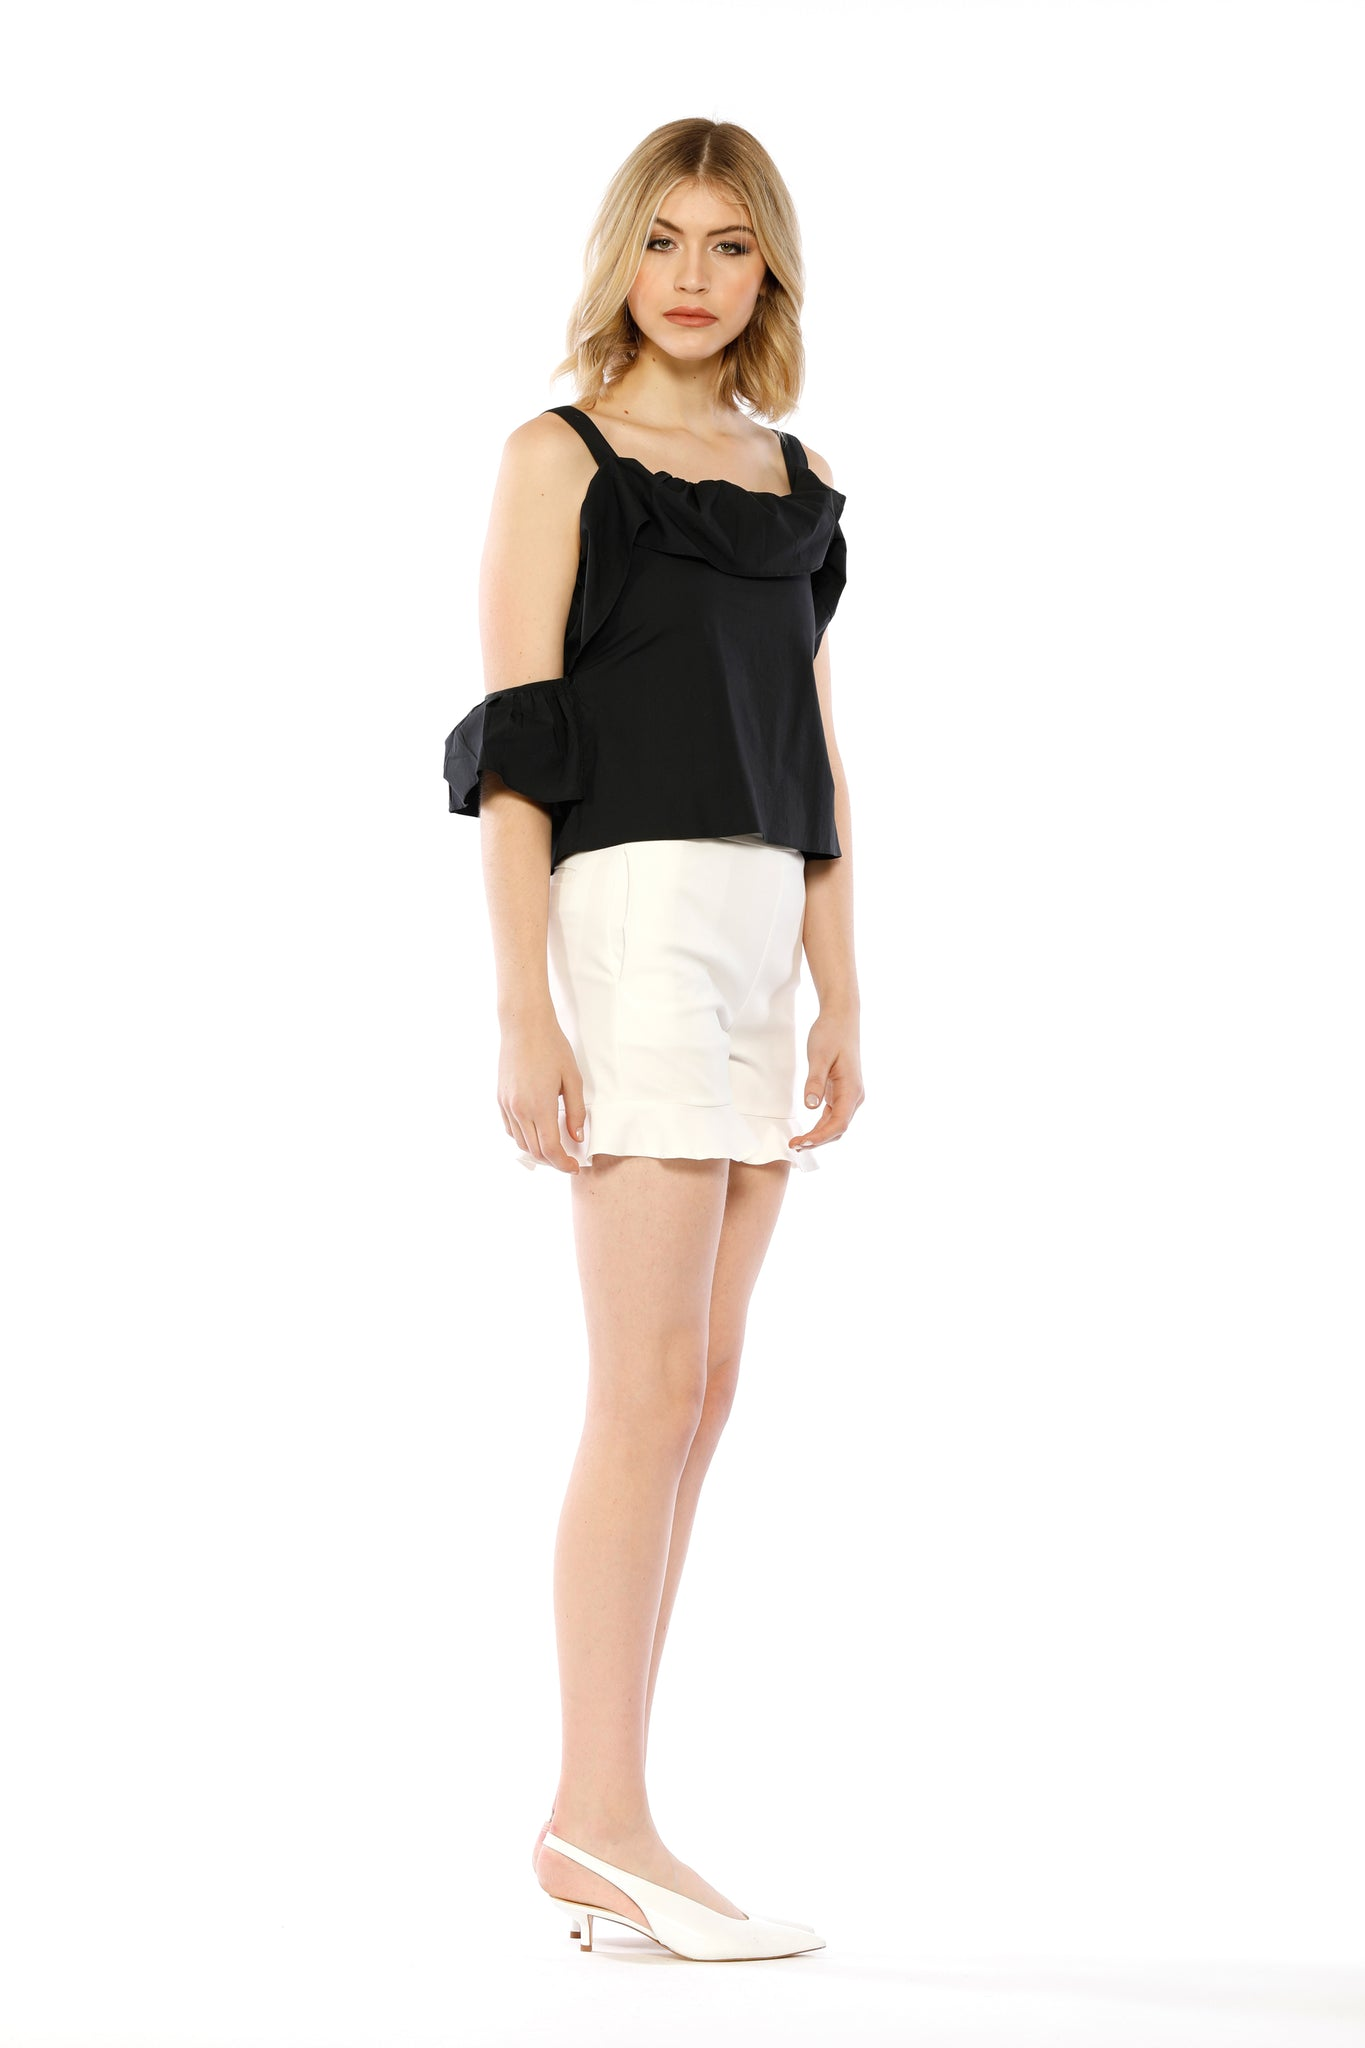 Front view (pose) of Kim Top, black adjustable strap tank top with ruffled collar, flowing side frill, and one batwing sleeve. 100% Cotton and Machine-washable.